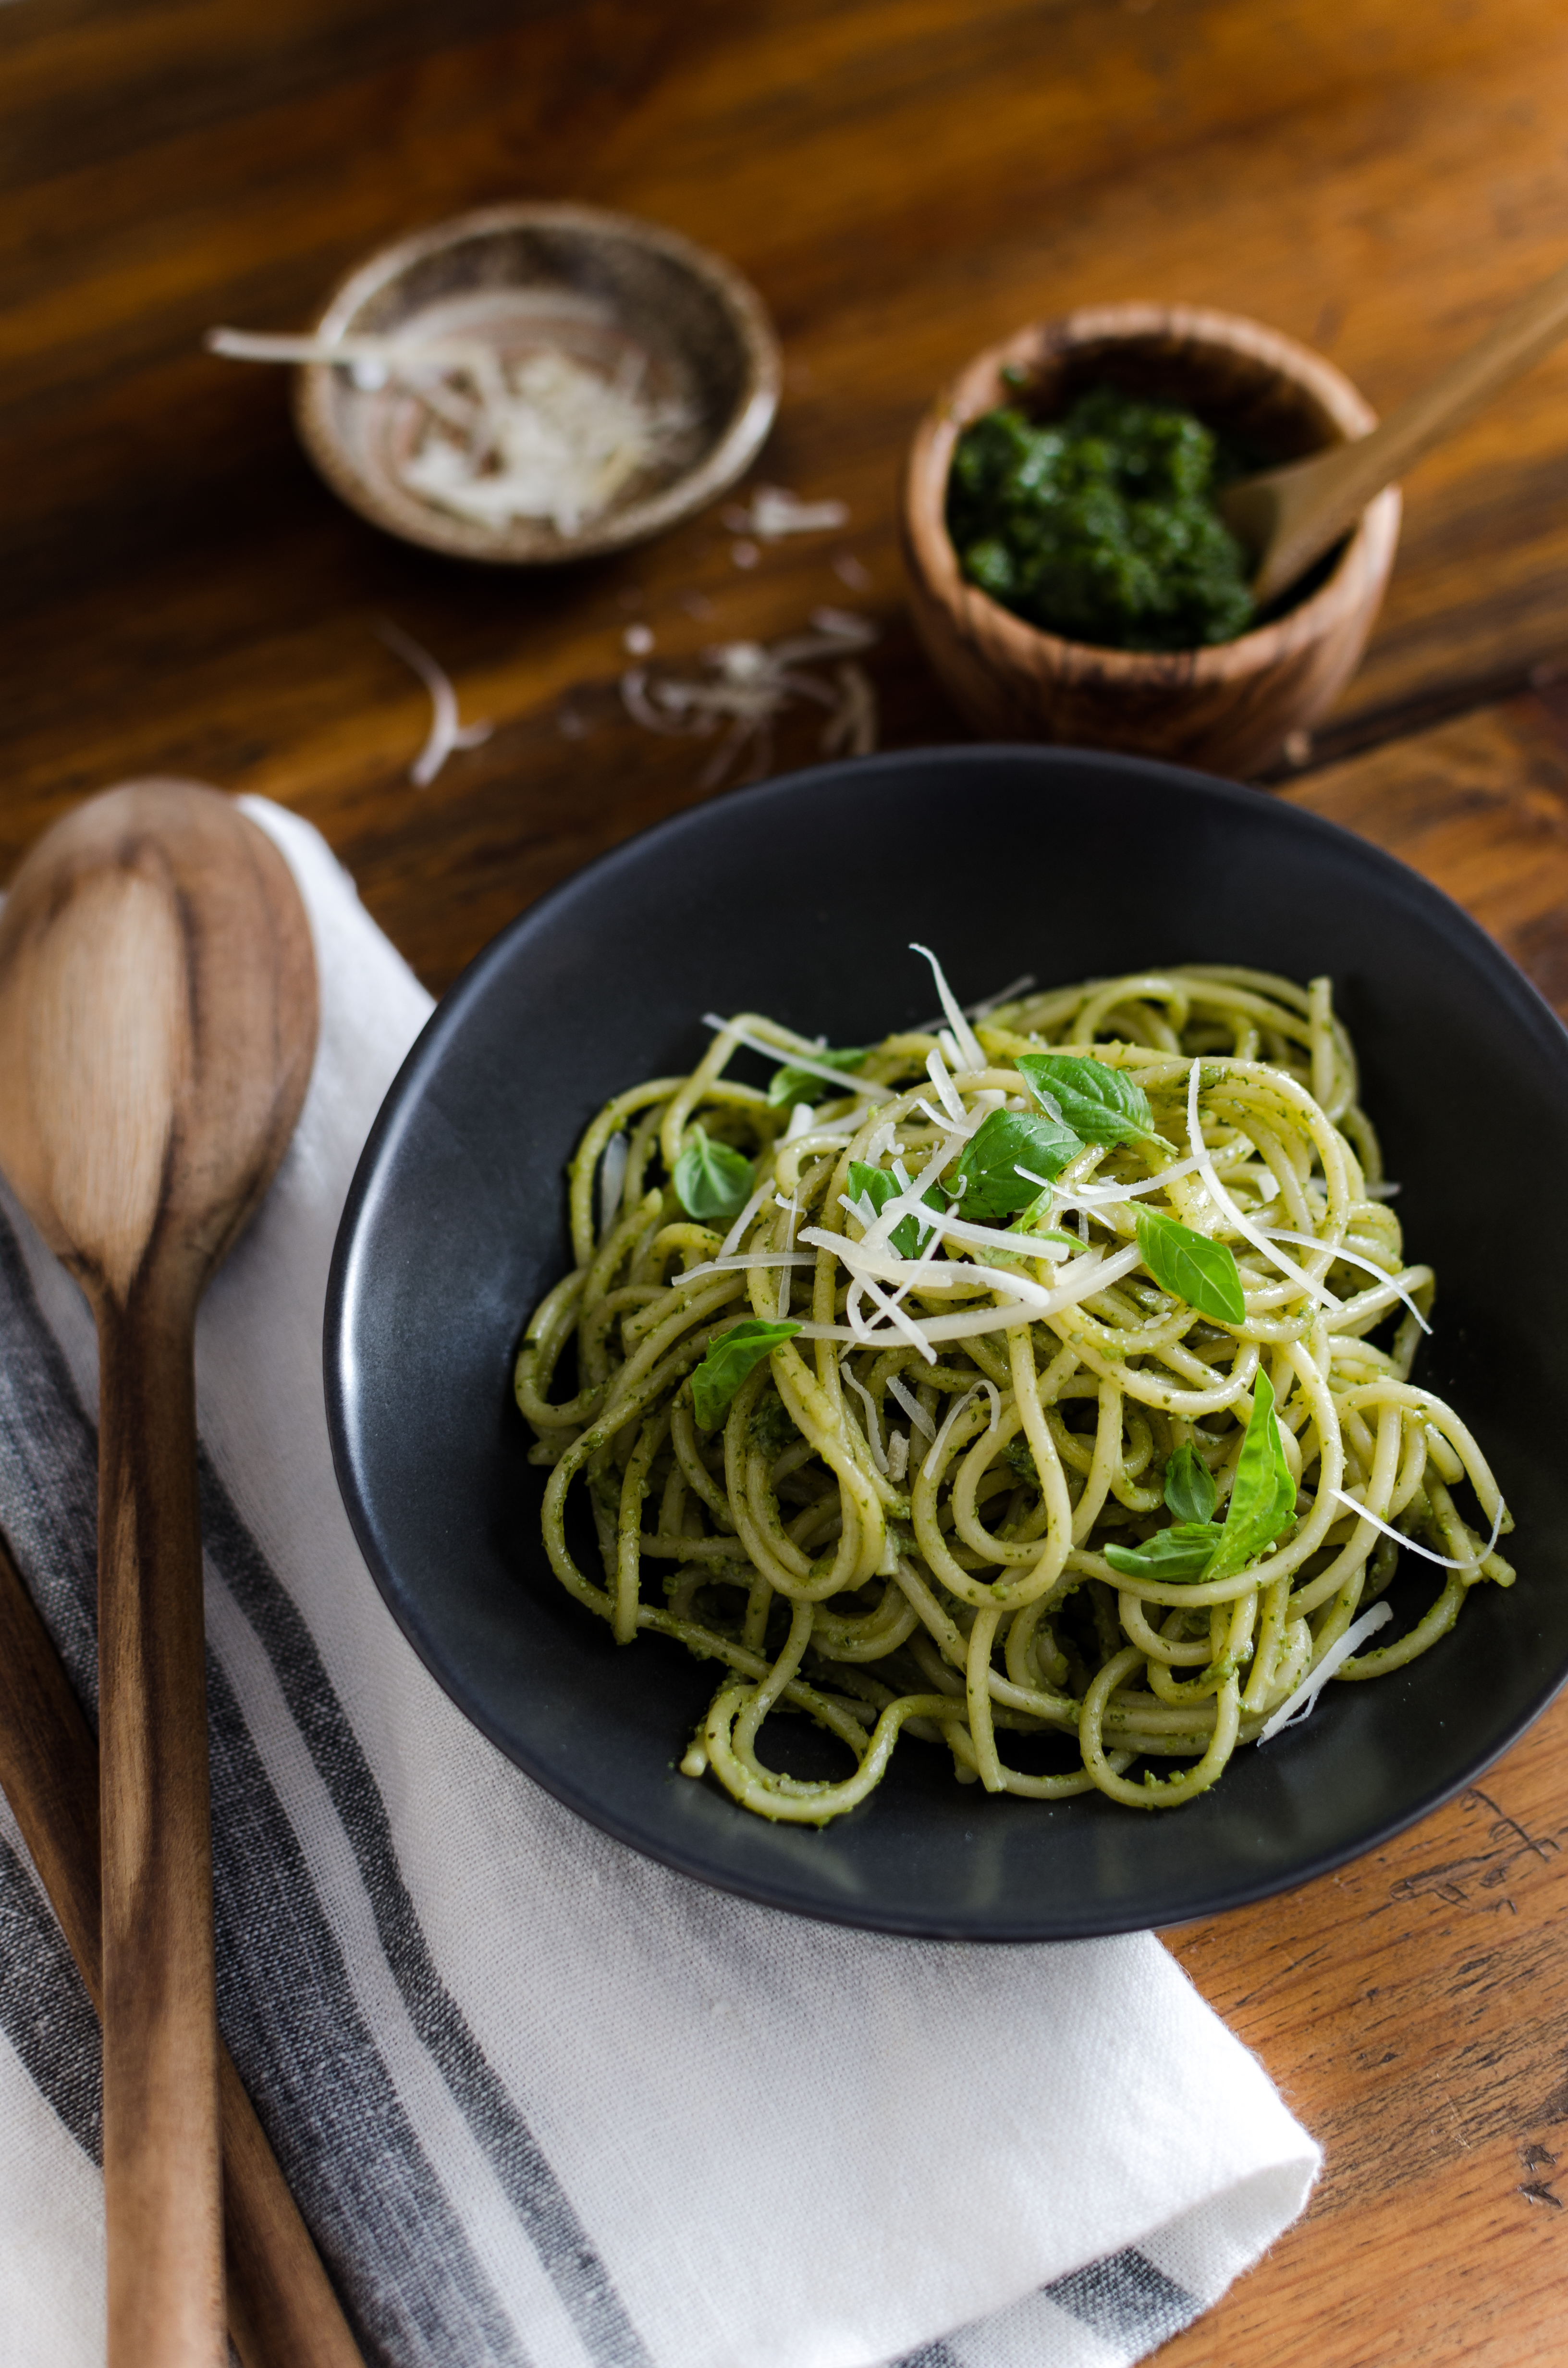 Easy, addictive Hemp Pesto perfect for pasta, pizza and sandwiches. // Bob's Red Mill // gluten free, vegetarian